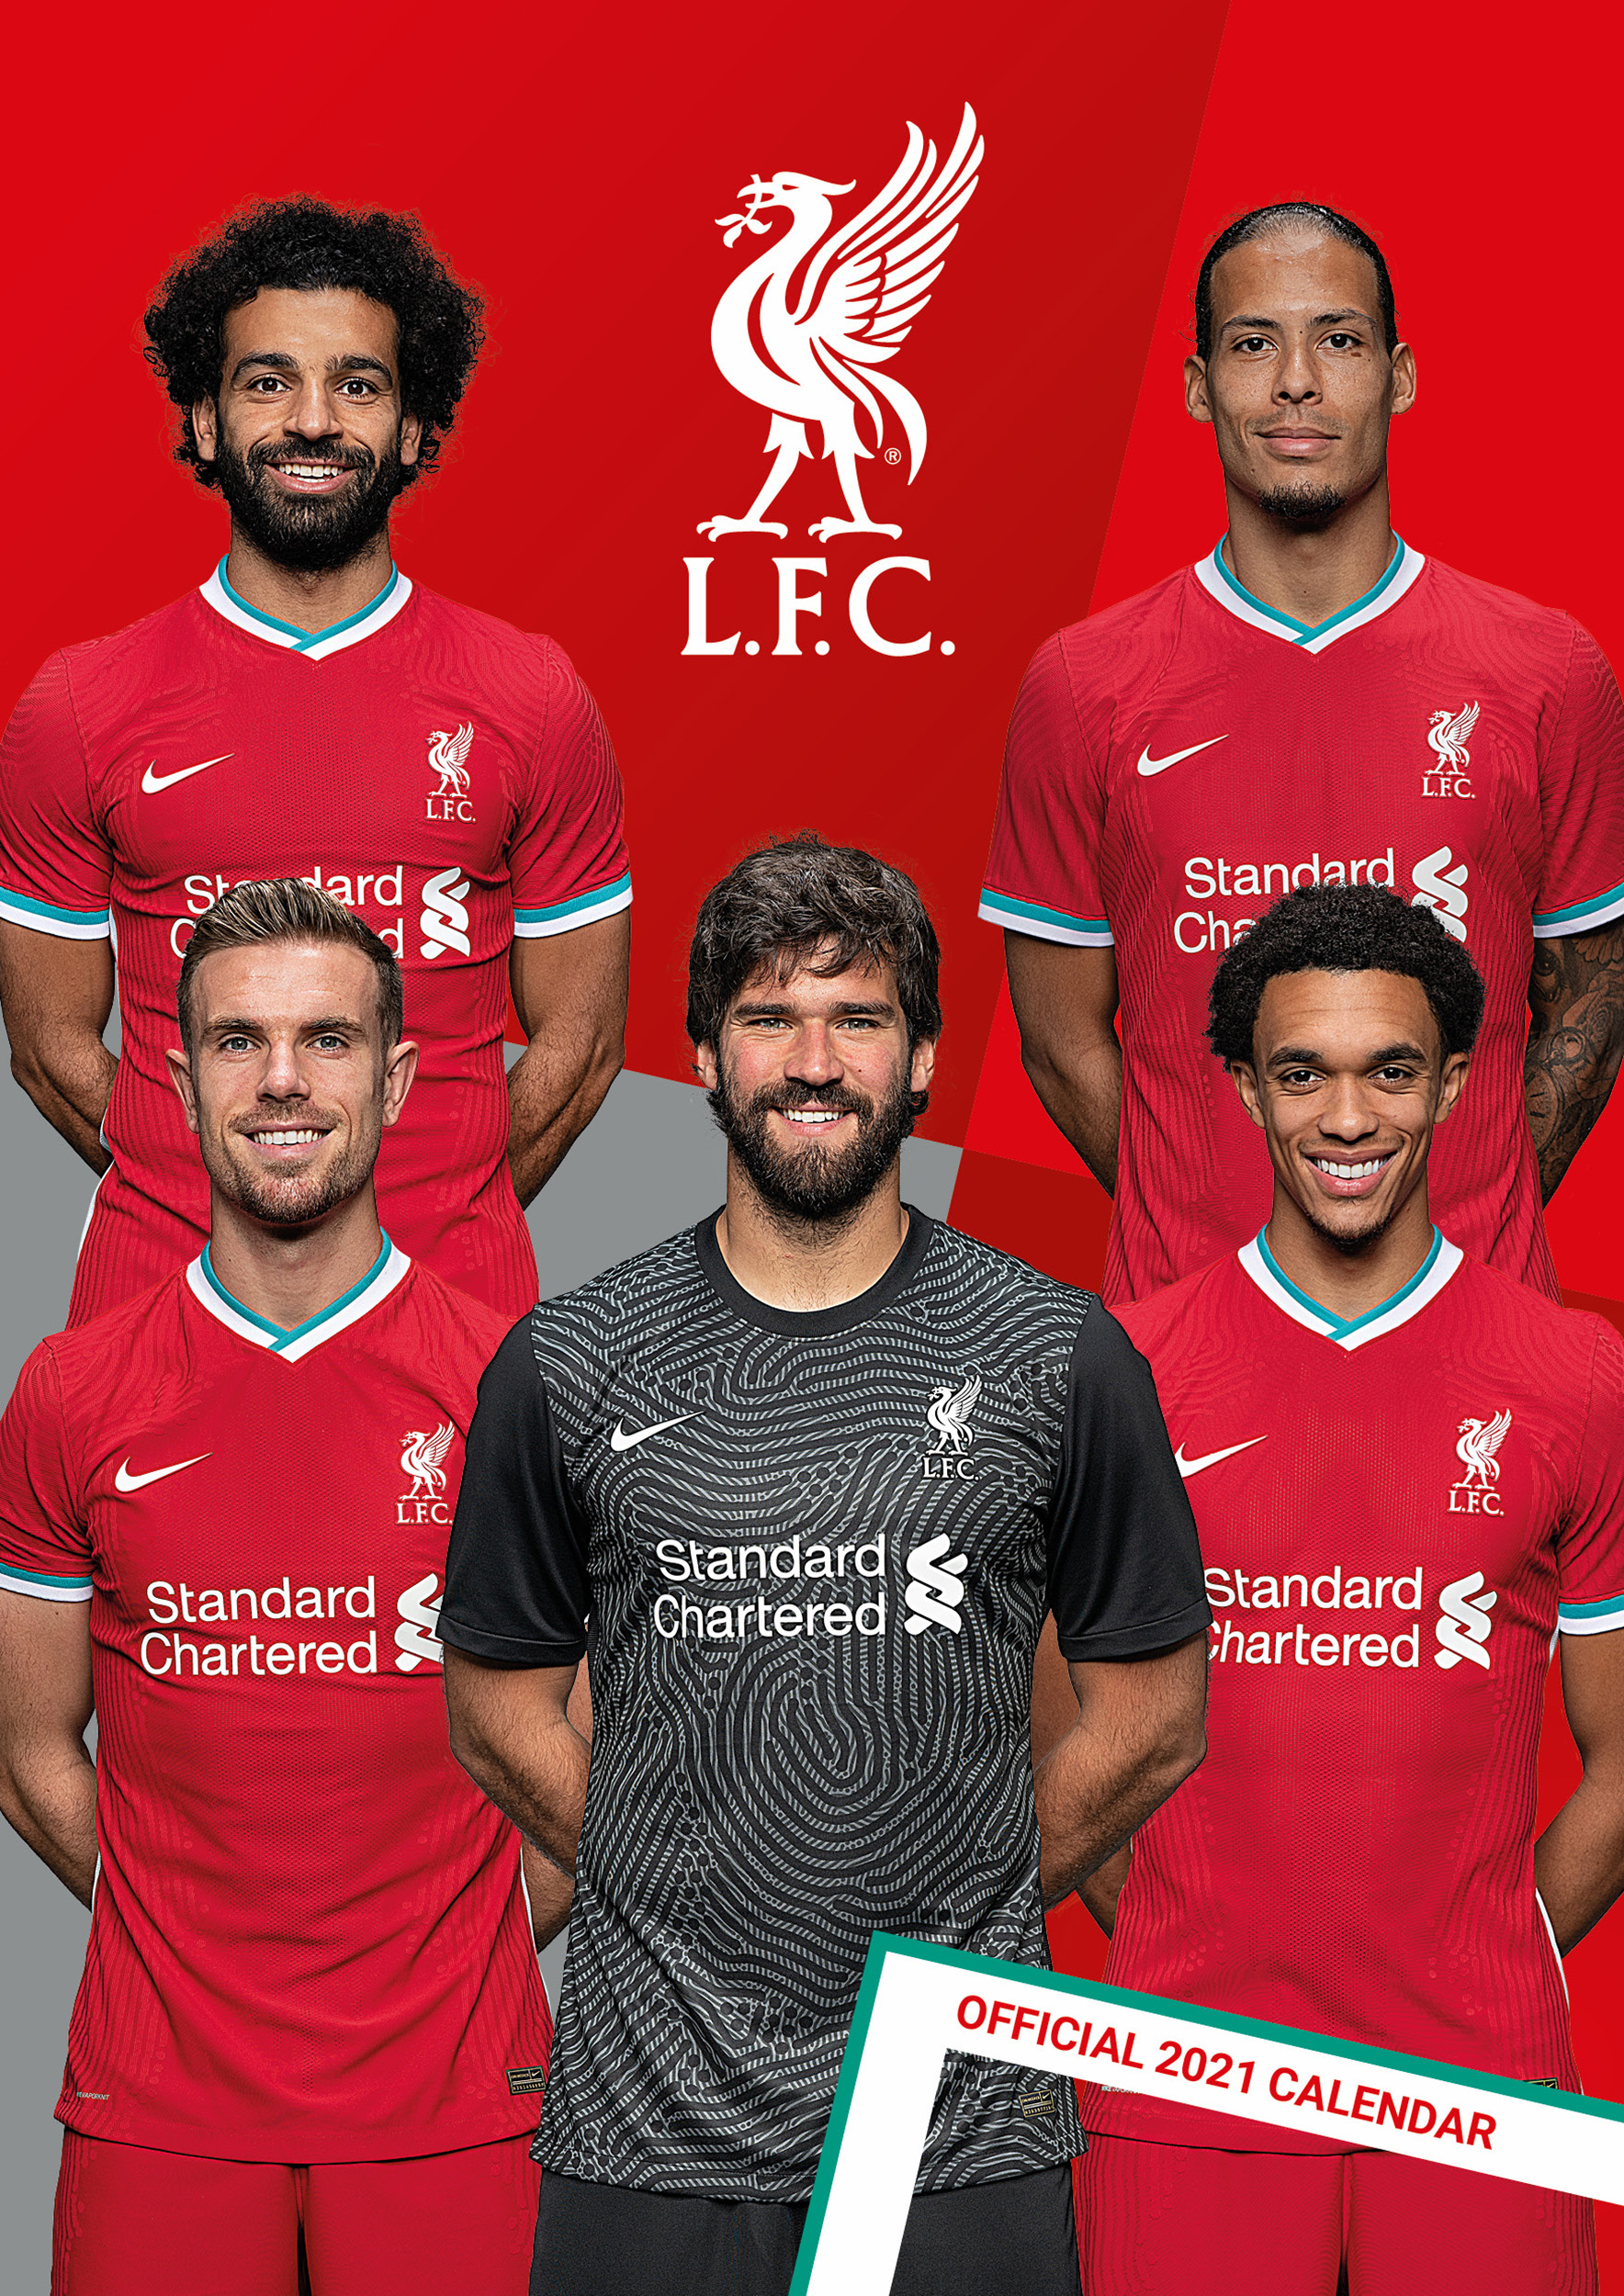 Above: The Liverpool FC officially licensed calendar took the number one slot again this year in the Danilo league table.